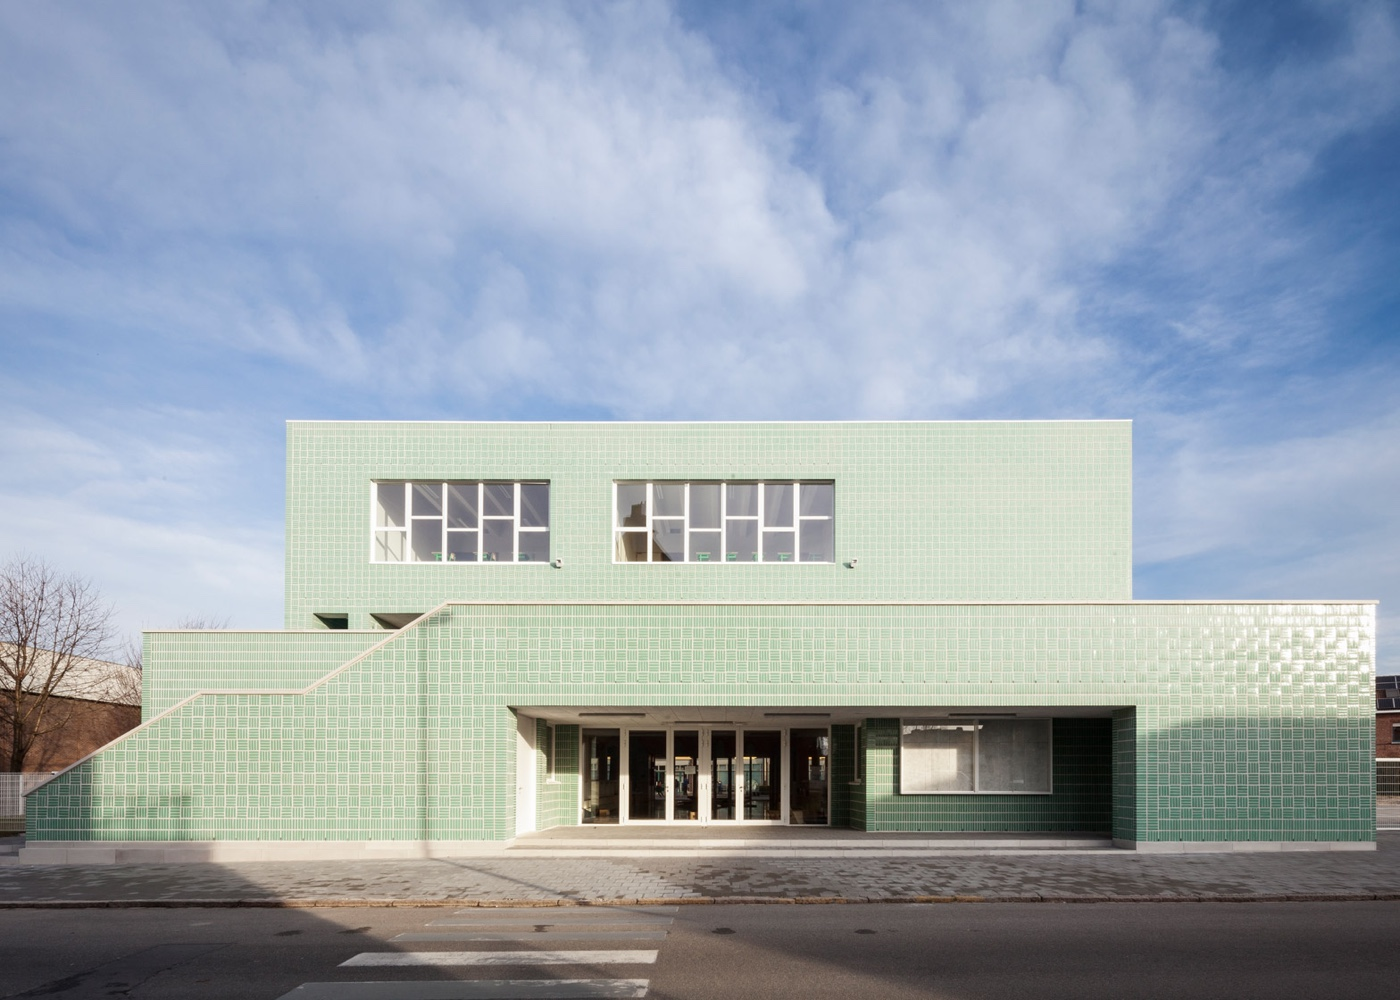 Fresh mint-green glazed bricks adorning a school facade.